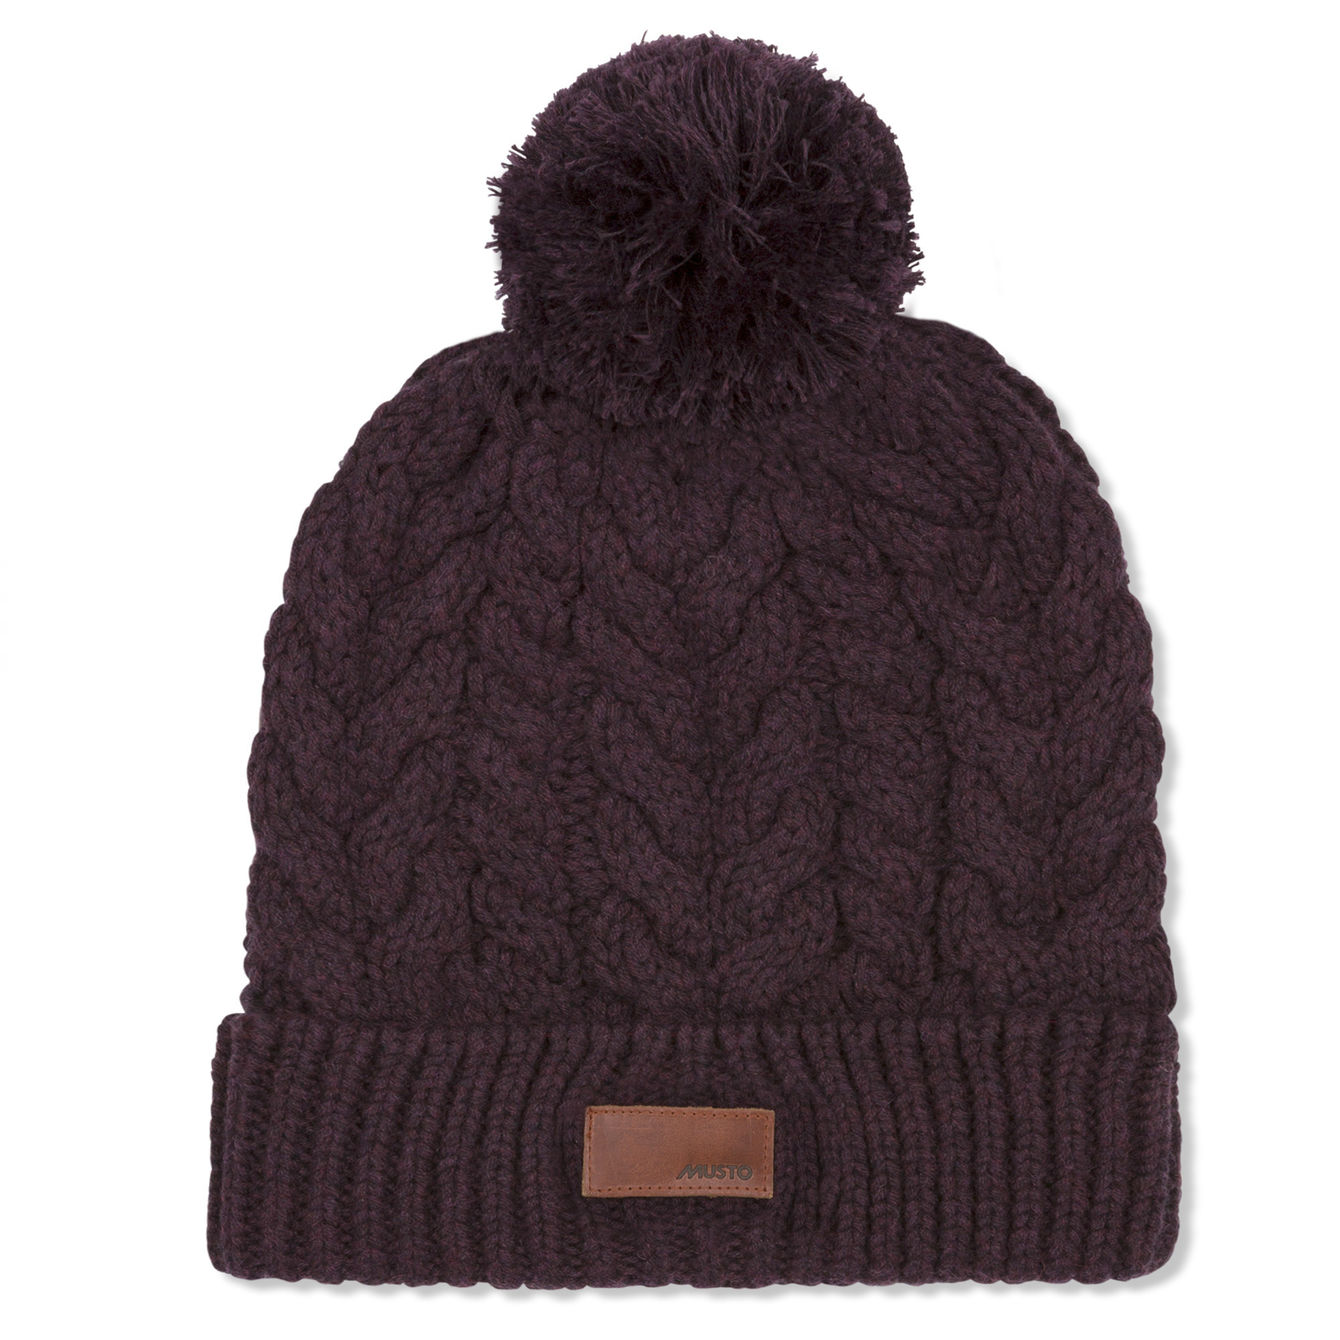 CHUNKY CABLE KNIT BOBBLE FW